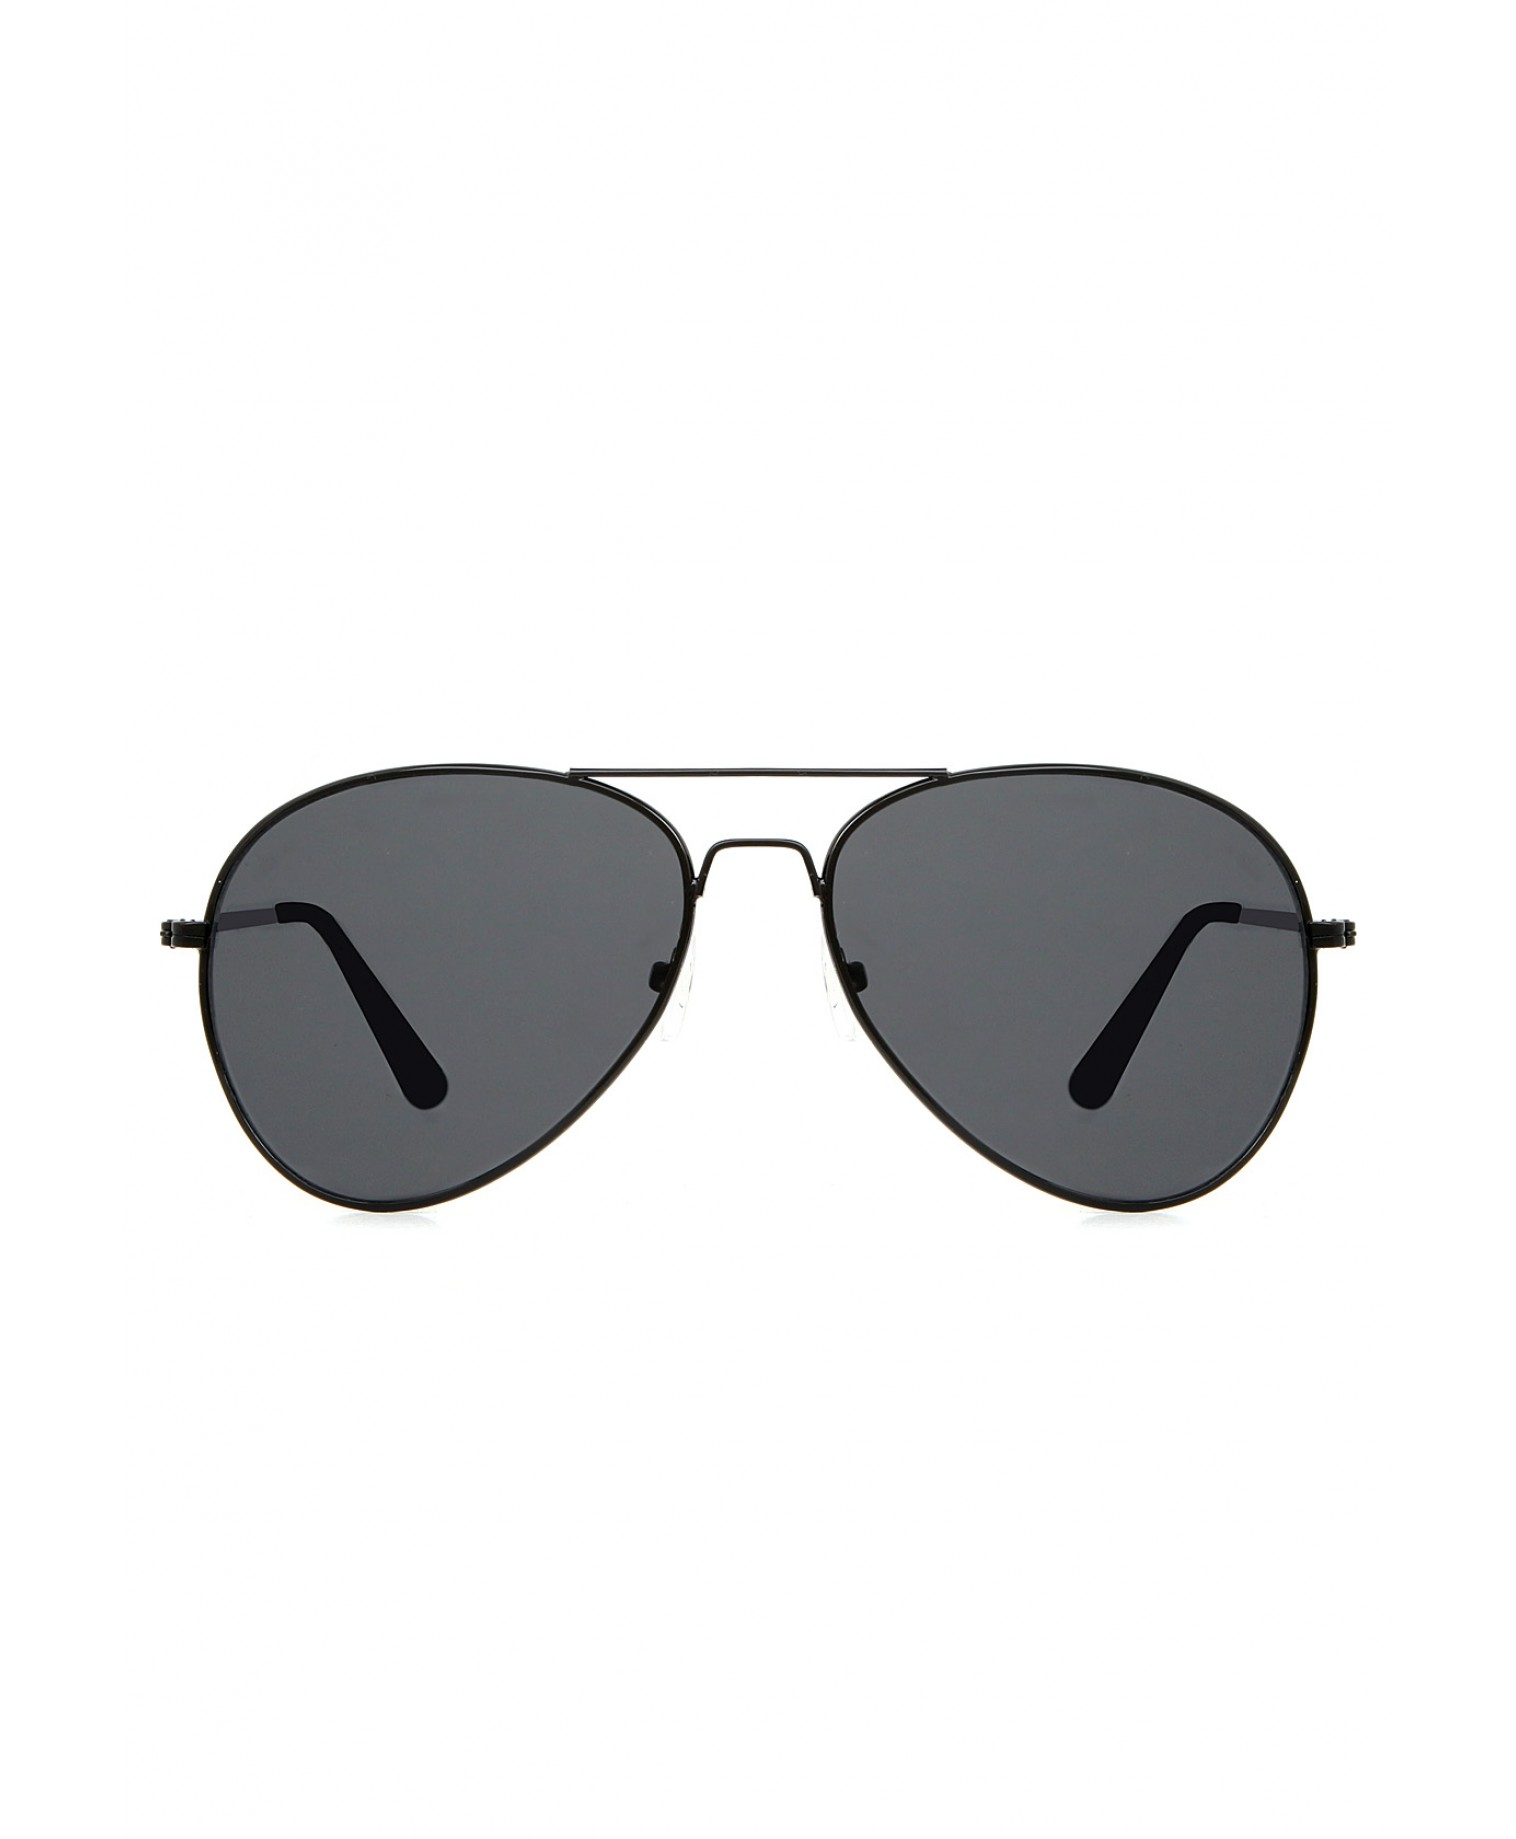 Elma aviator sunglasses 2